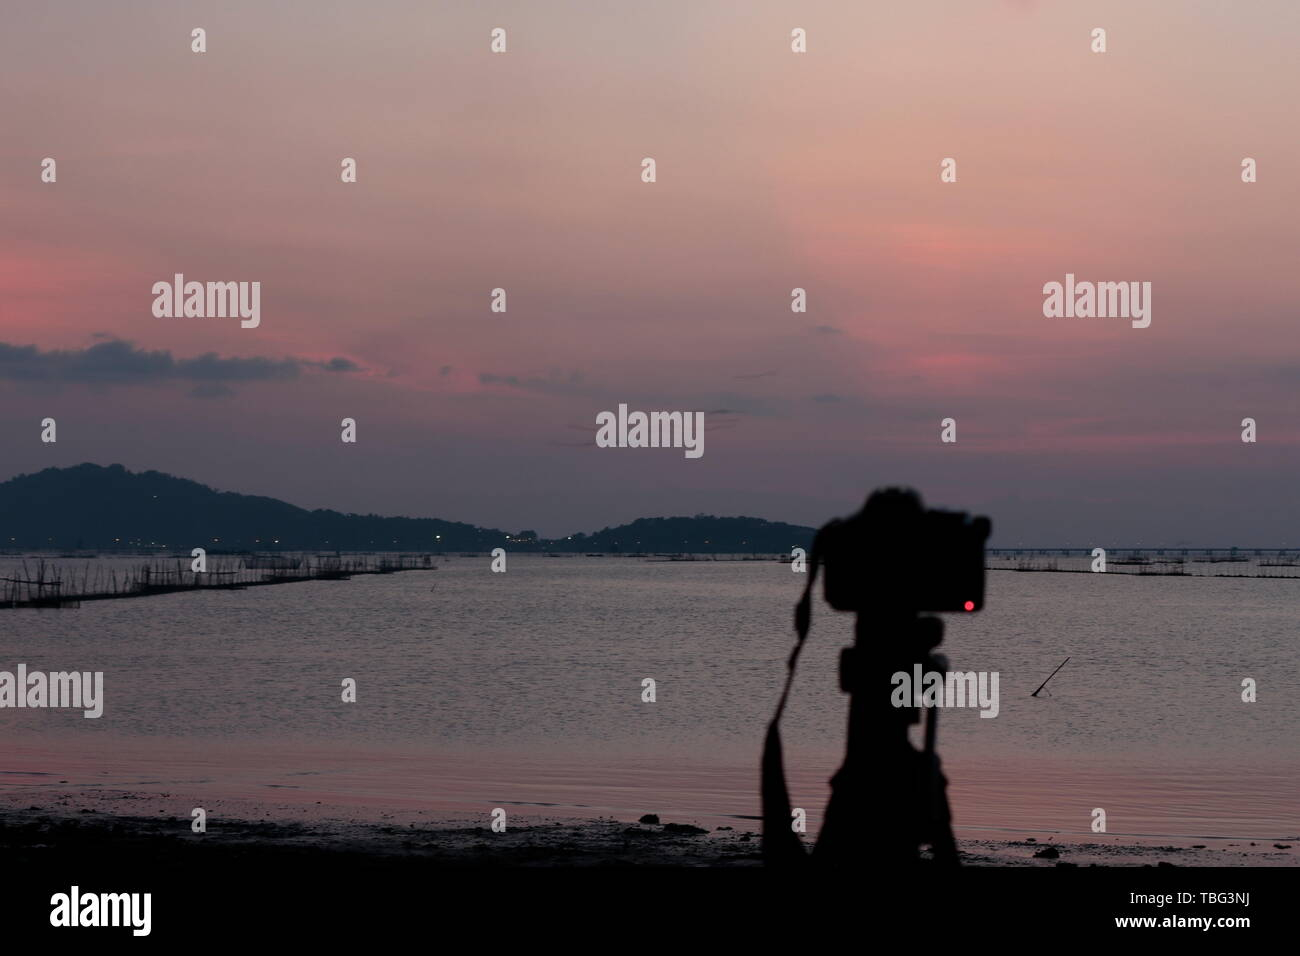 Focus intention, landscape, sea, mountain and fishing tools, local fishermen Use the camera in the foreground. Stock Photo